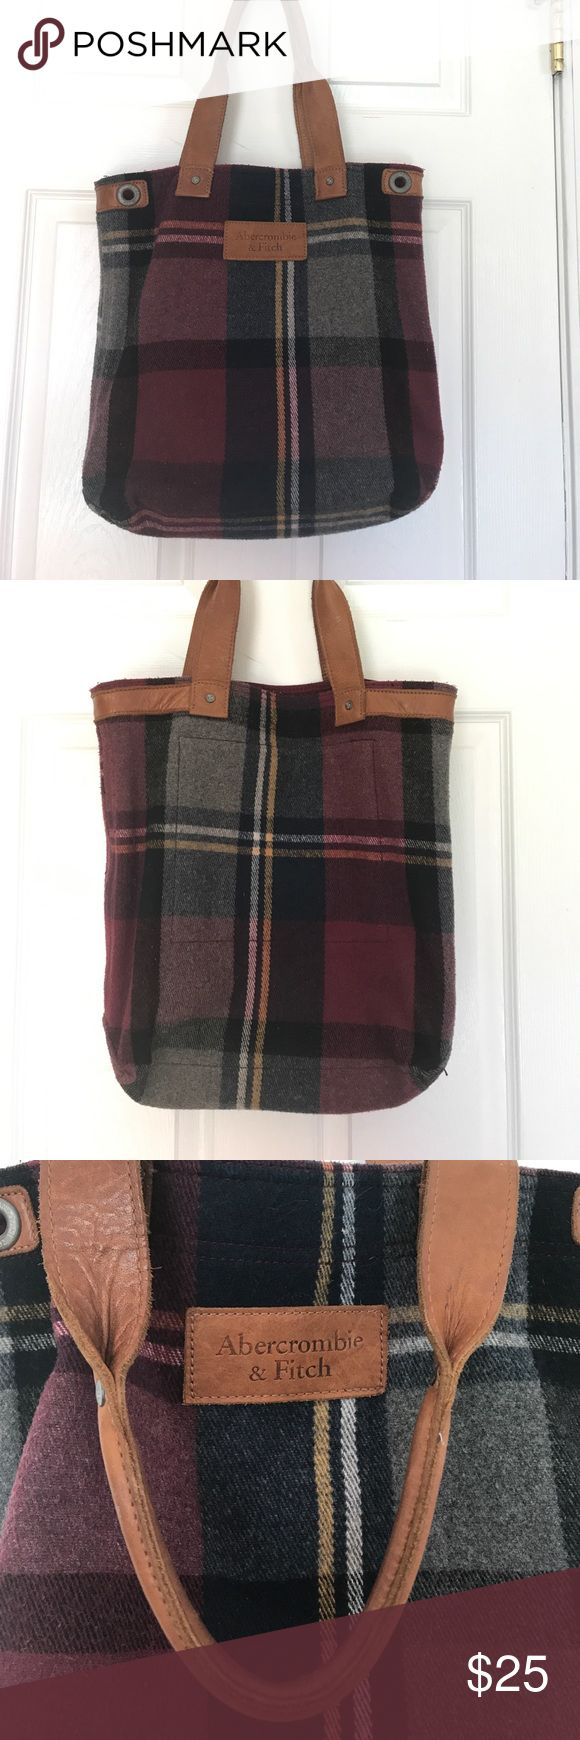 Abercrombie and Fitch wool blanket bag This is a leather and wool blanket large tote bag. So great, durable, sturdy leather straps , navy and burgundy plaid wool blanket exterior. Inside is clean. This bag was used for school, exterior has slight pilling. Bags Totes